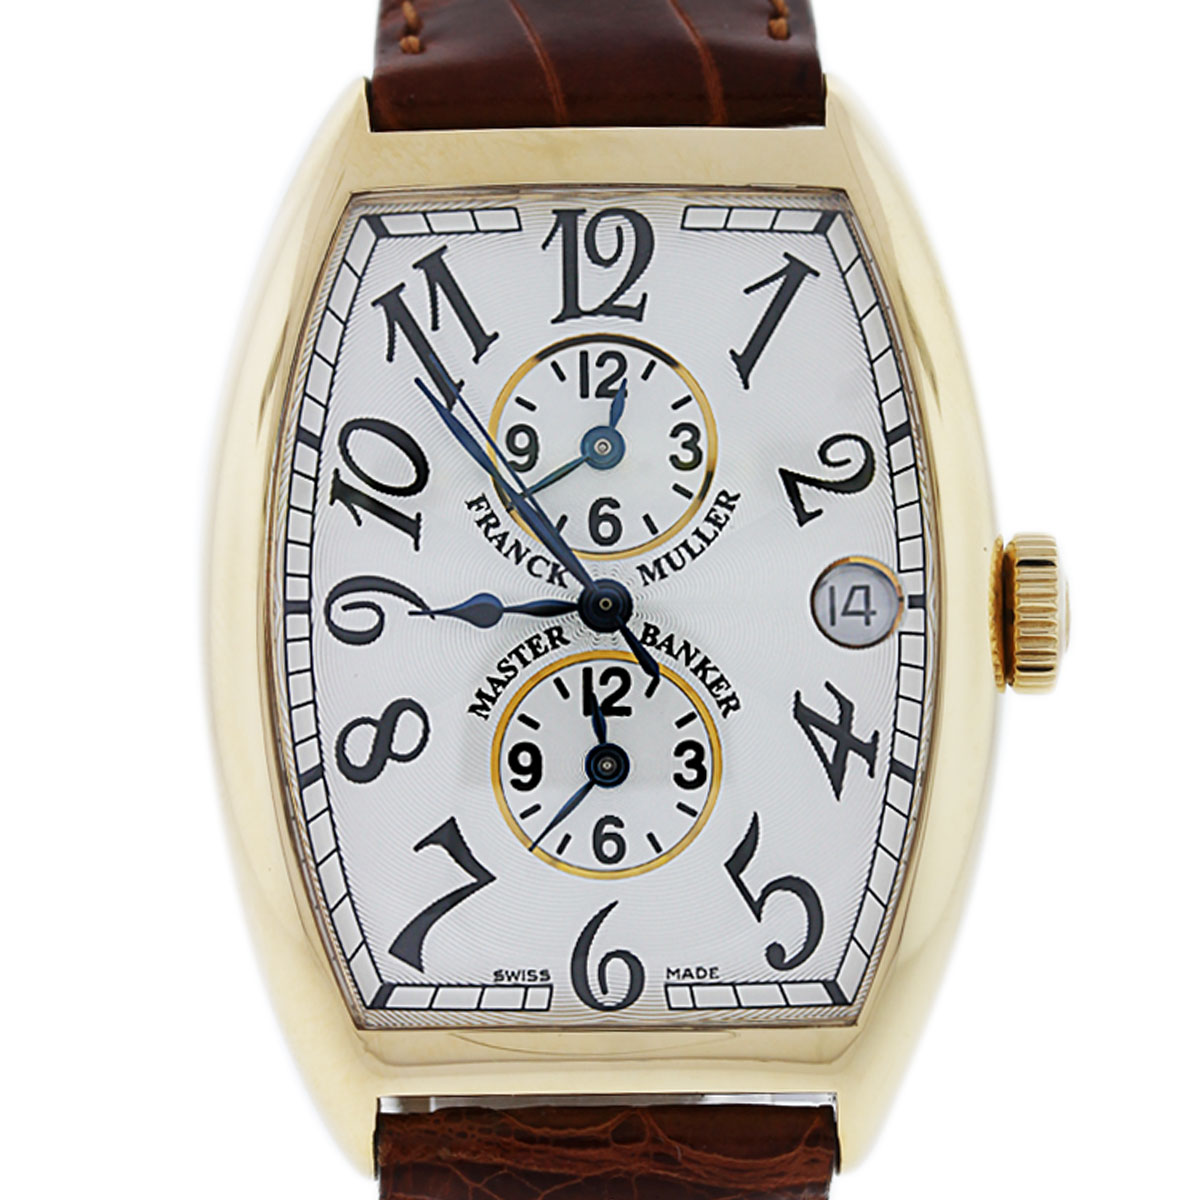 Franck muller master banker 6850mb yellow gold watch on leather for Franck muller watches